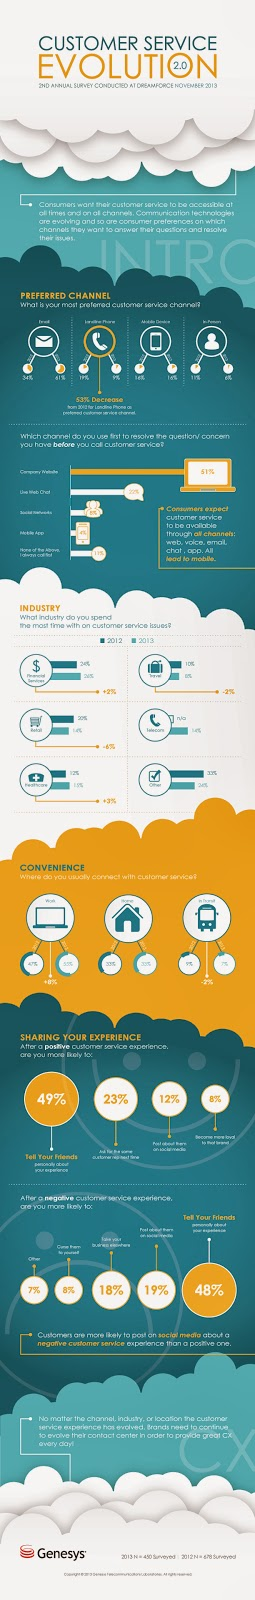 http://blog.genesyslab.com/wp-content/uploads/2014/01/Genesys_Dreamforce_2013_Survey_Infographic.jpg